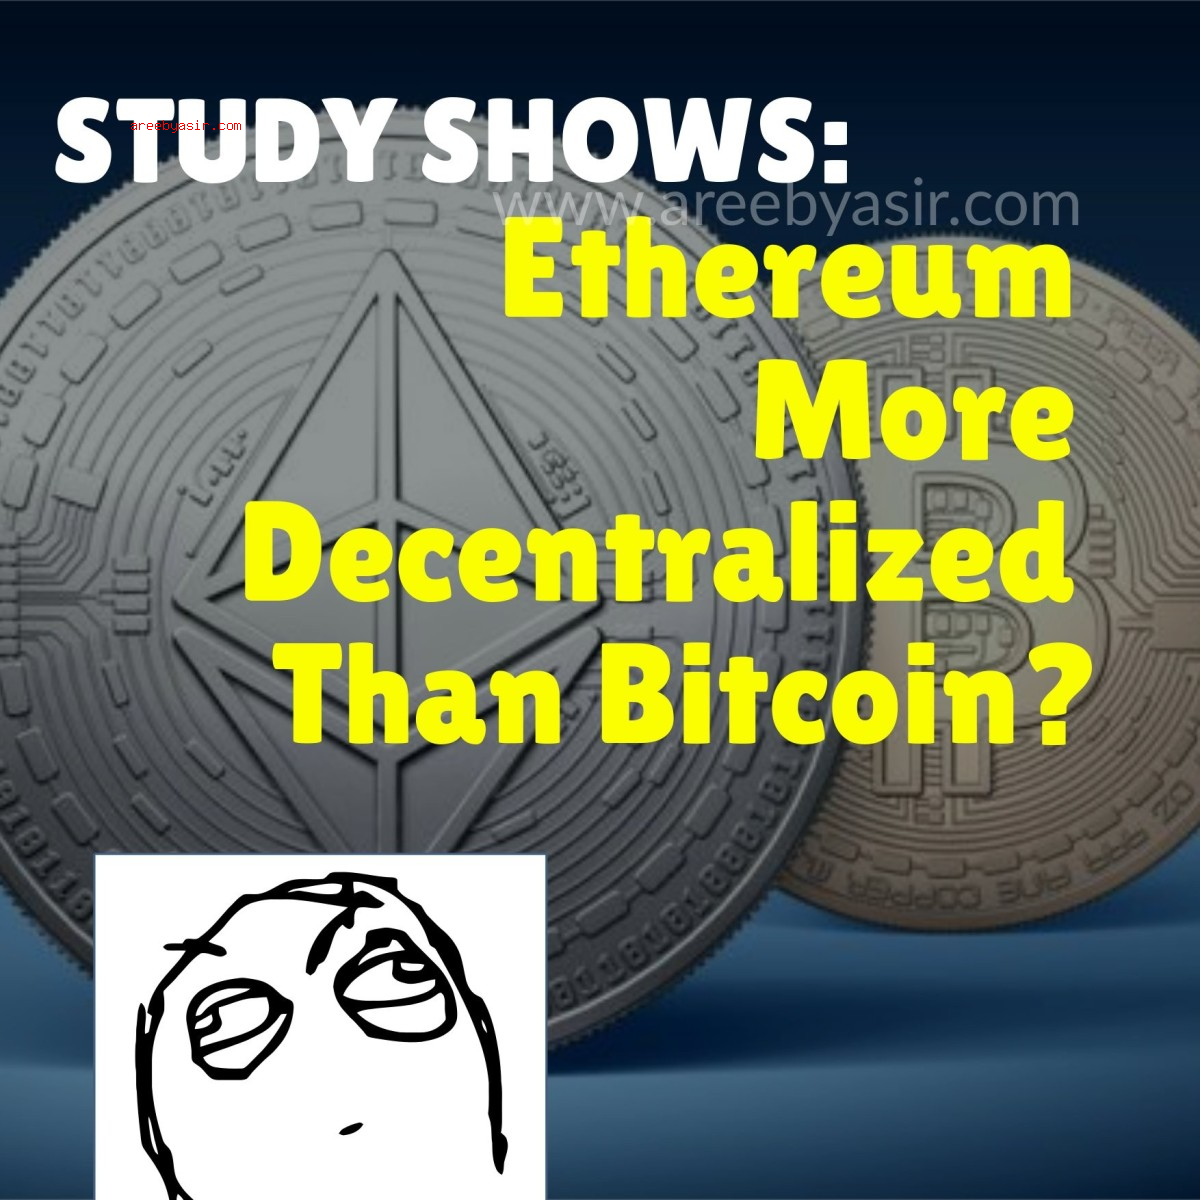 Study Shows Bitcoin Is More Centralized Than Ethereum